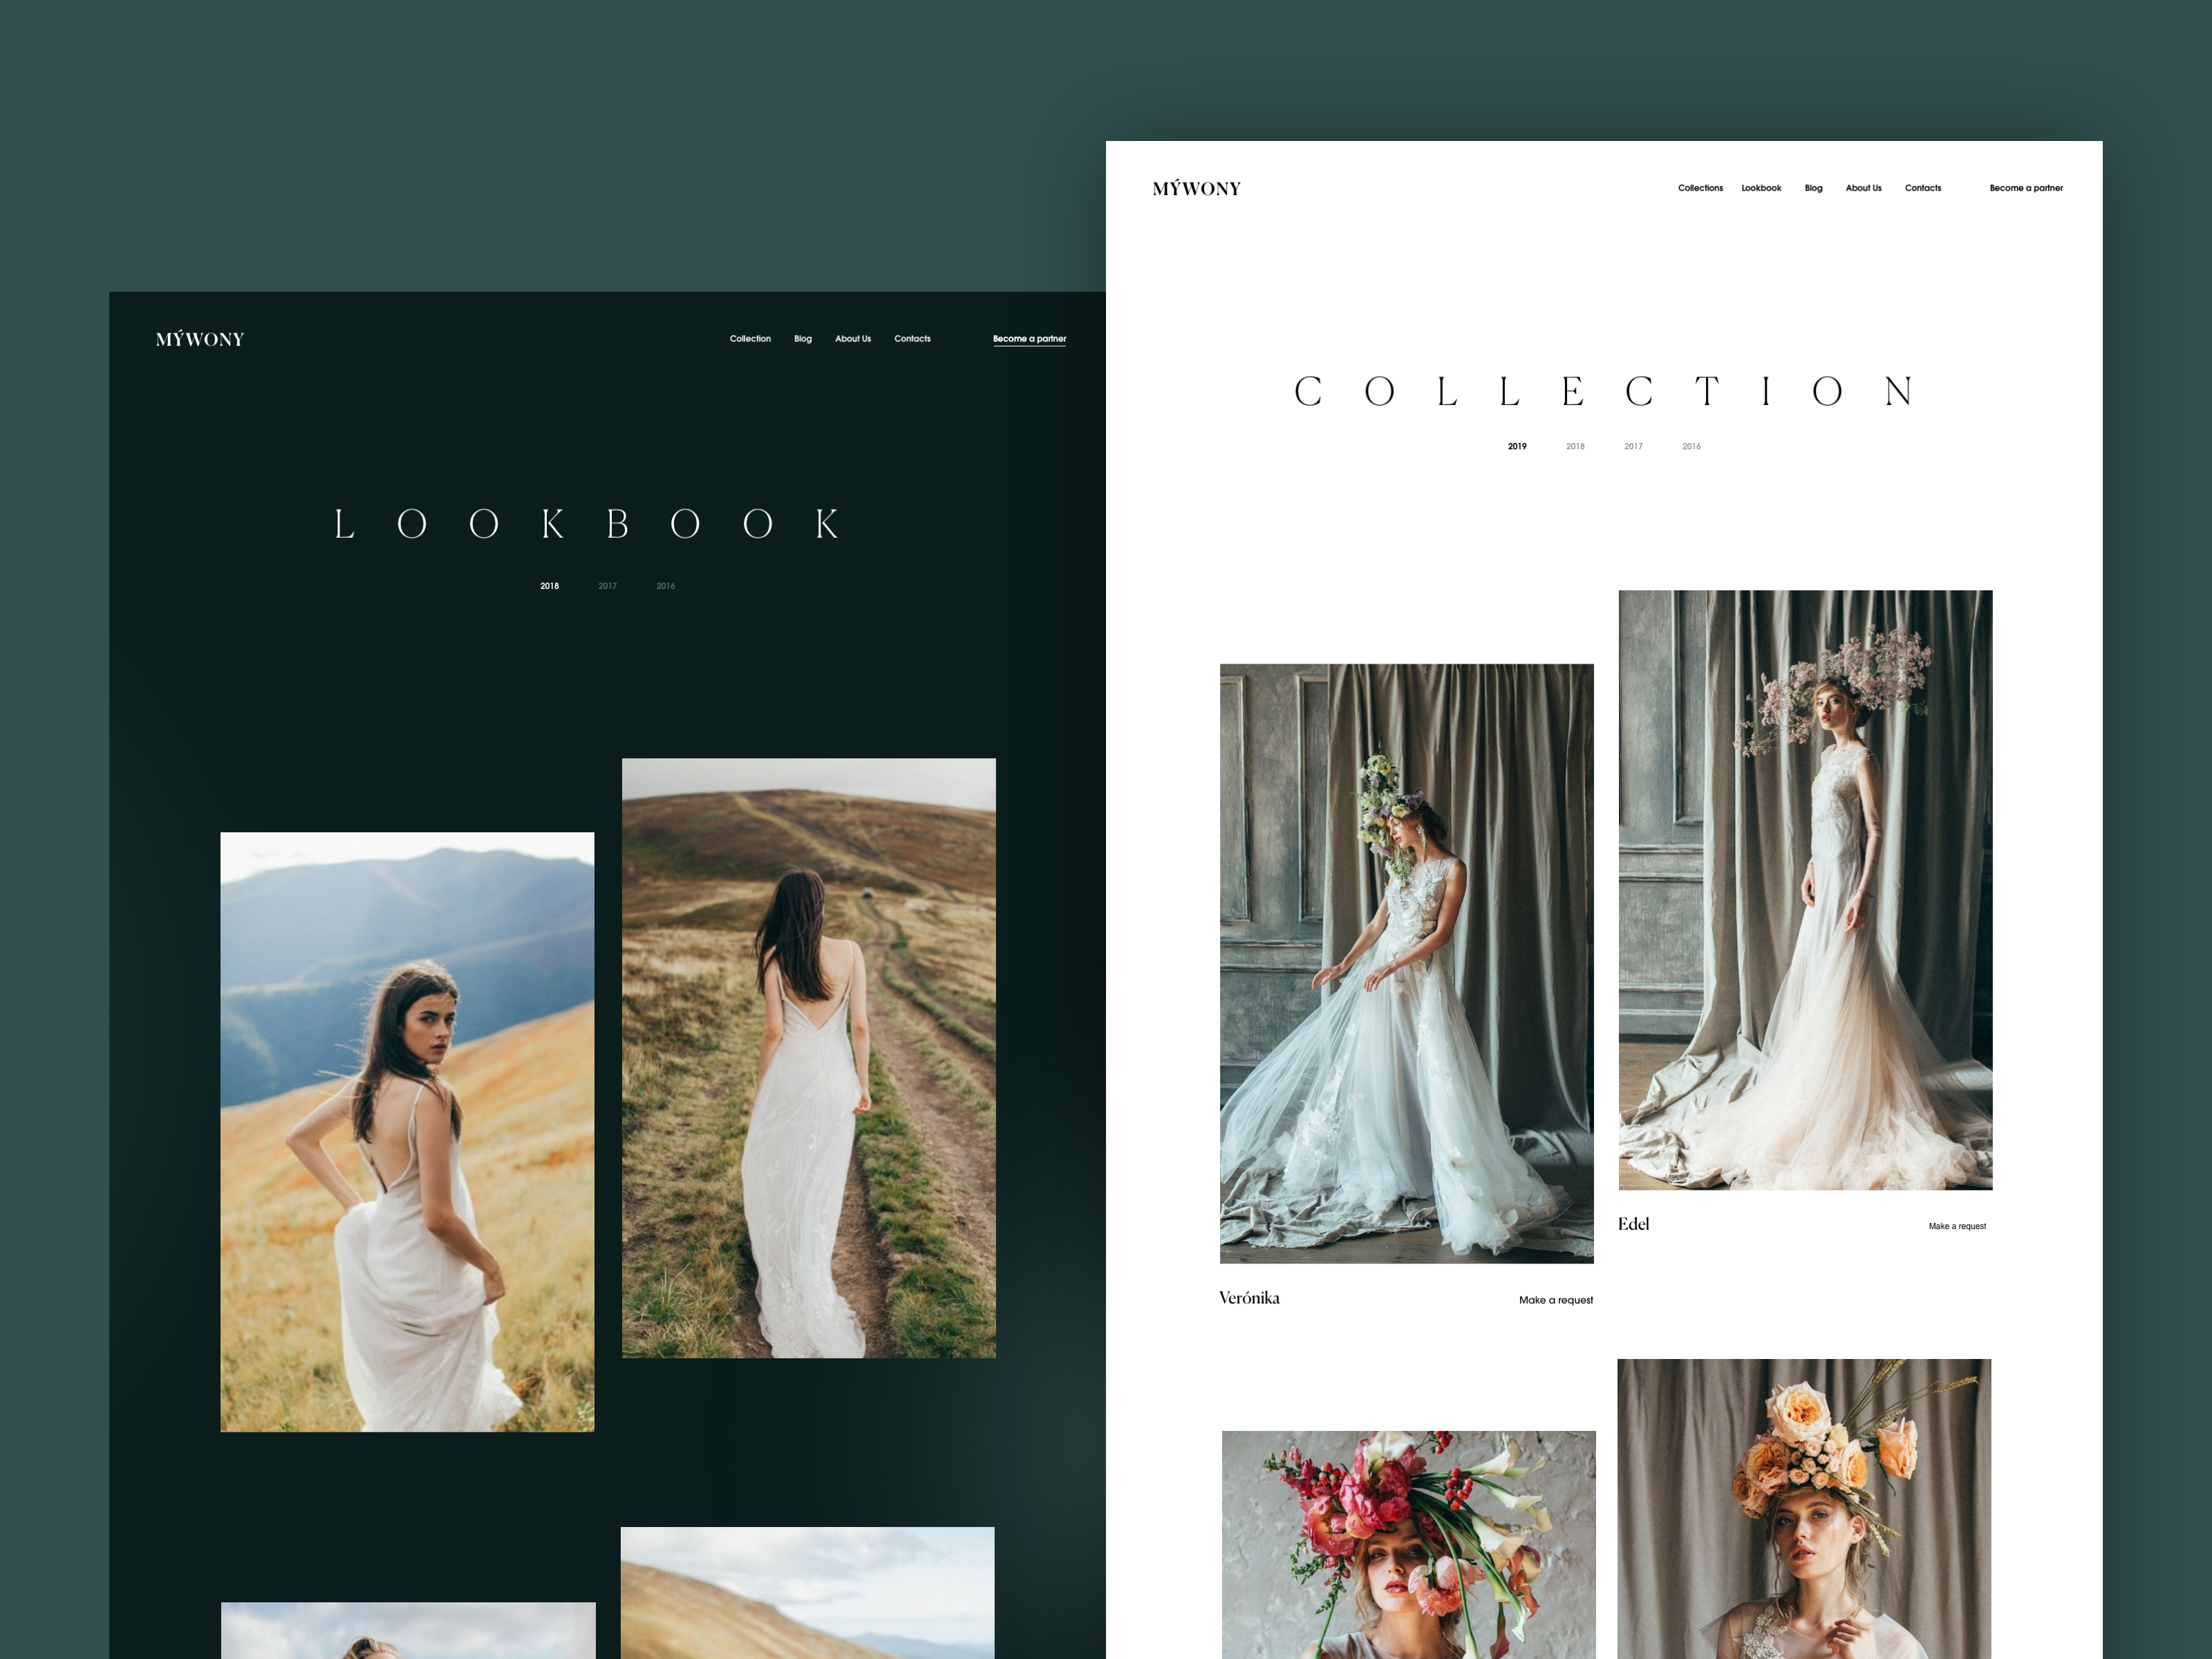 Mywony website lookbook collections tubik